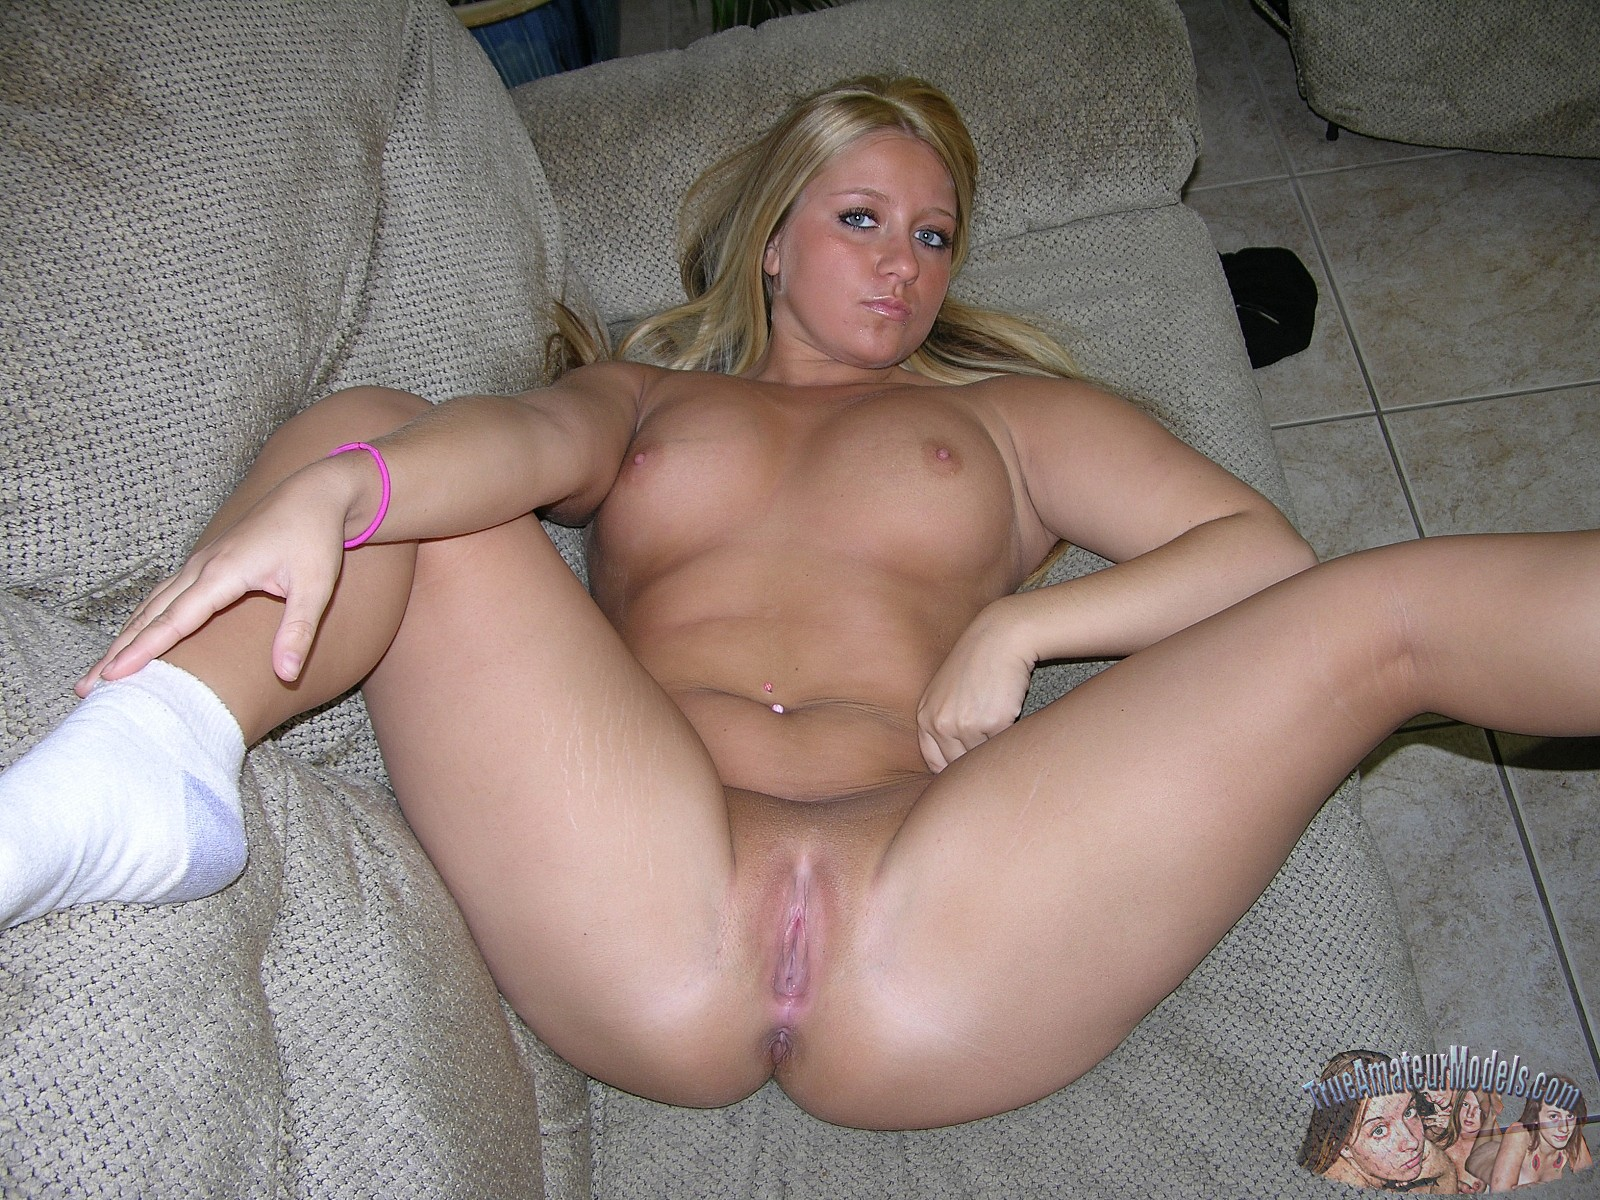 Do You Like To Look At Real Amateur Girls